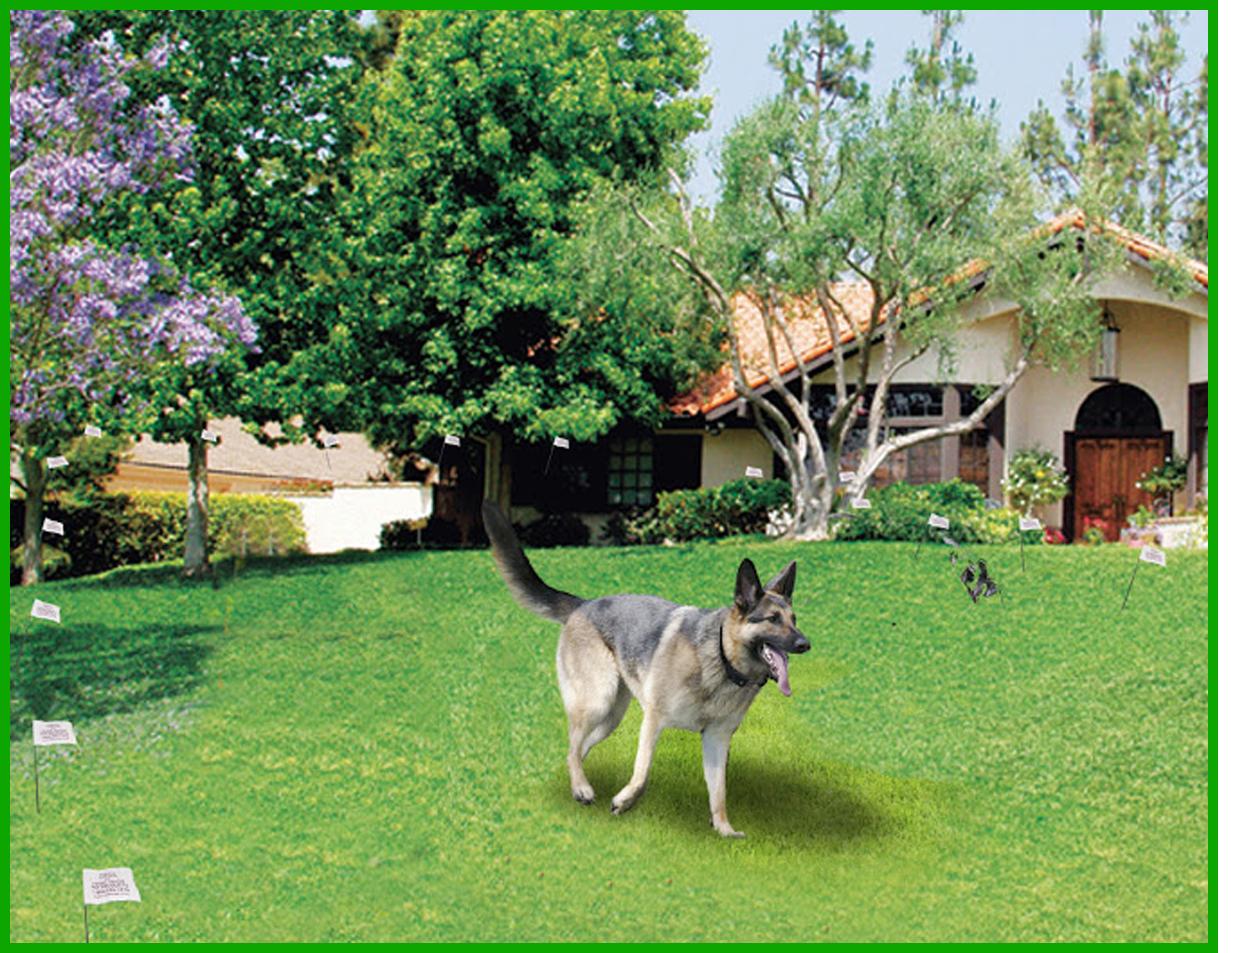 Keep your dog safe with the humane contain electric fence system